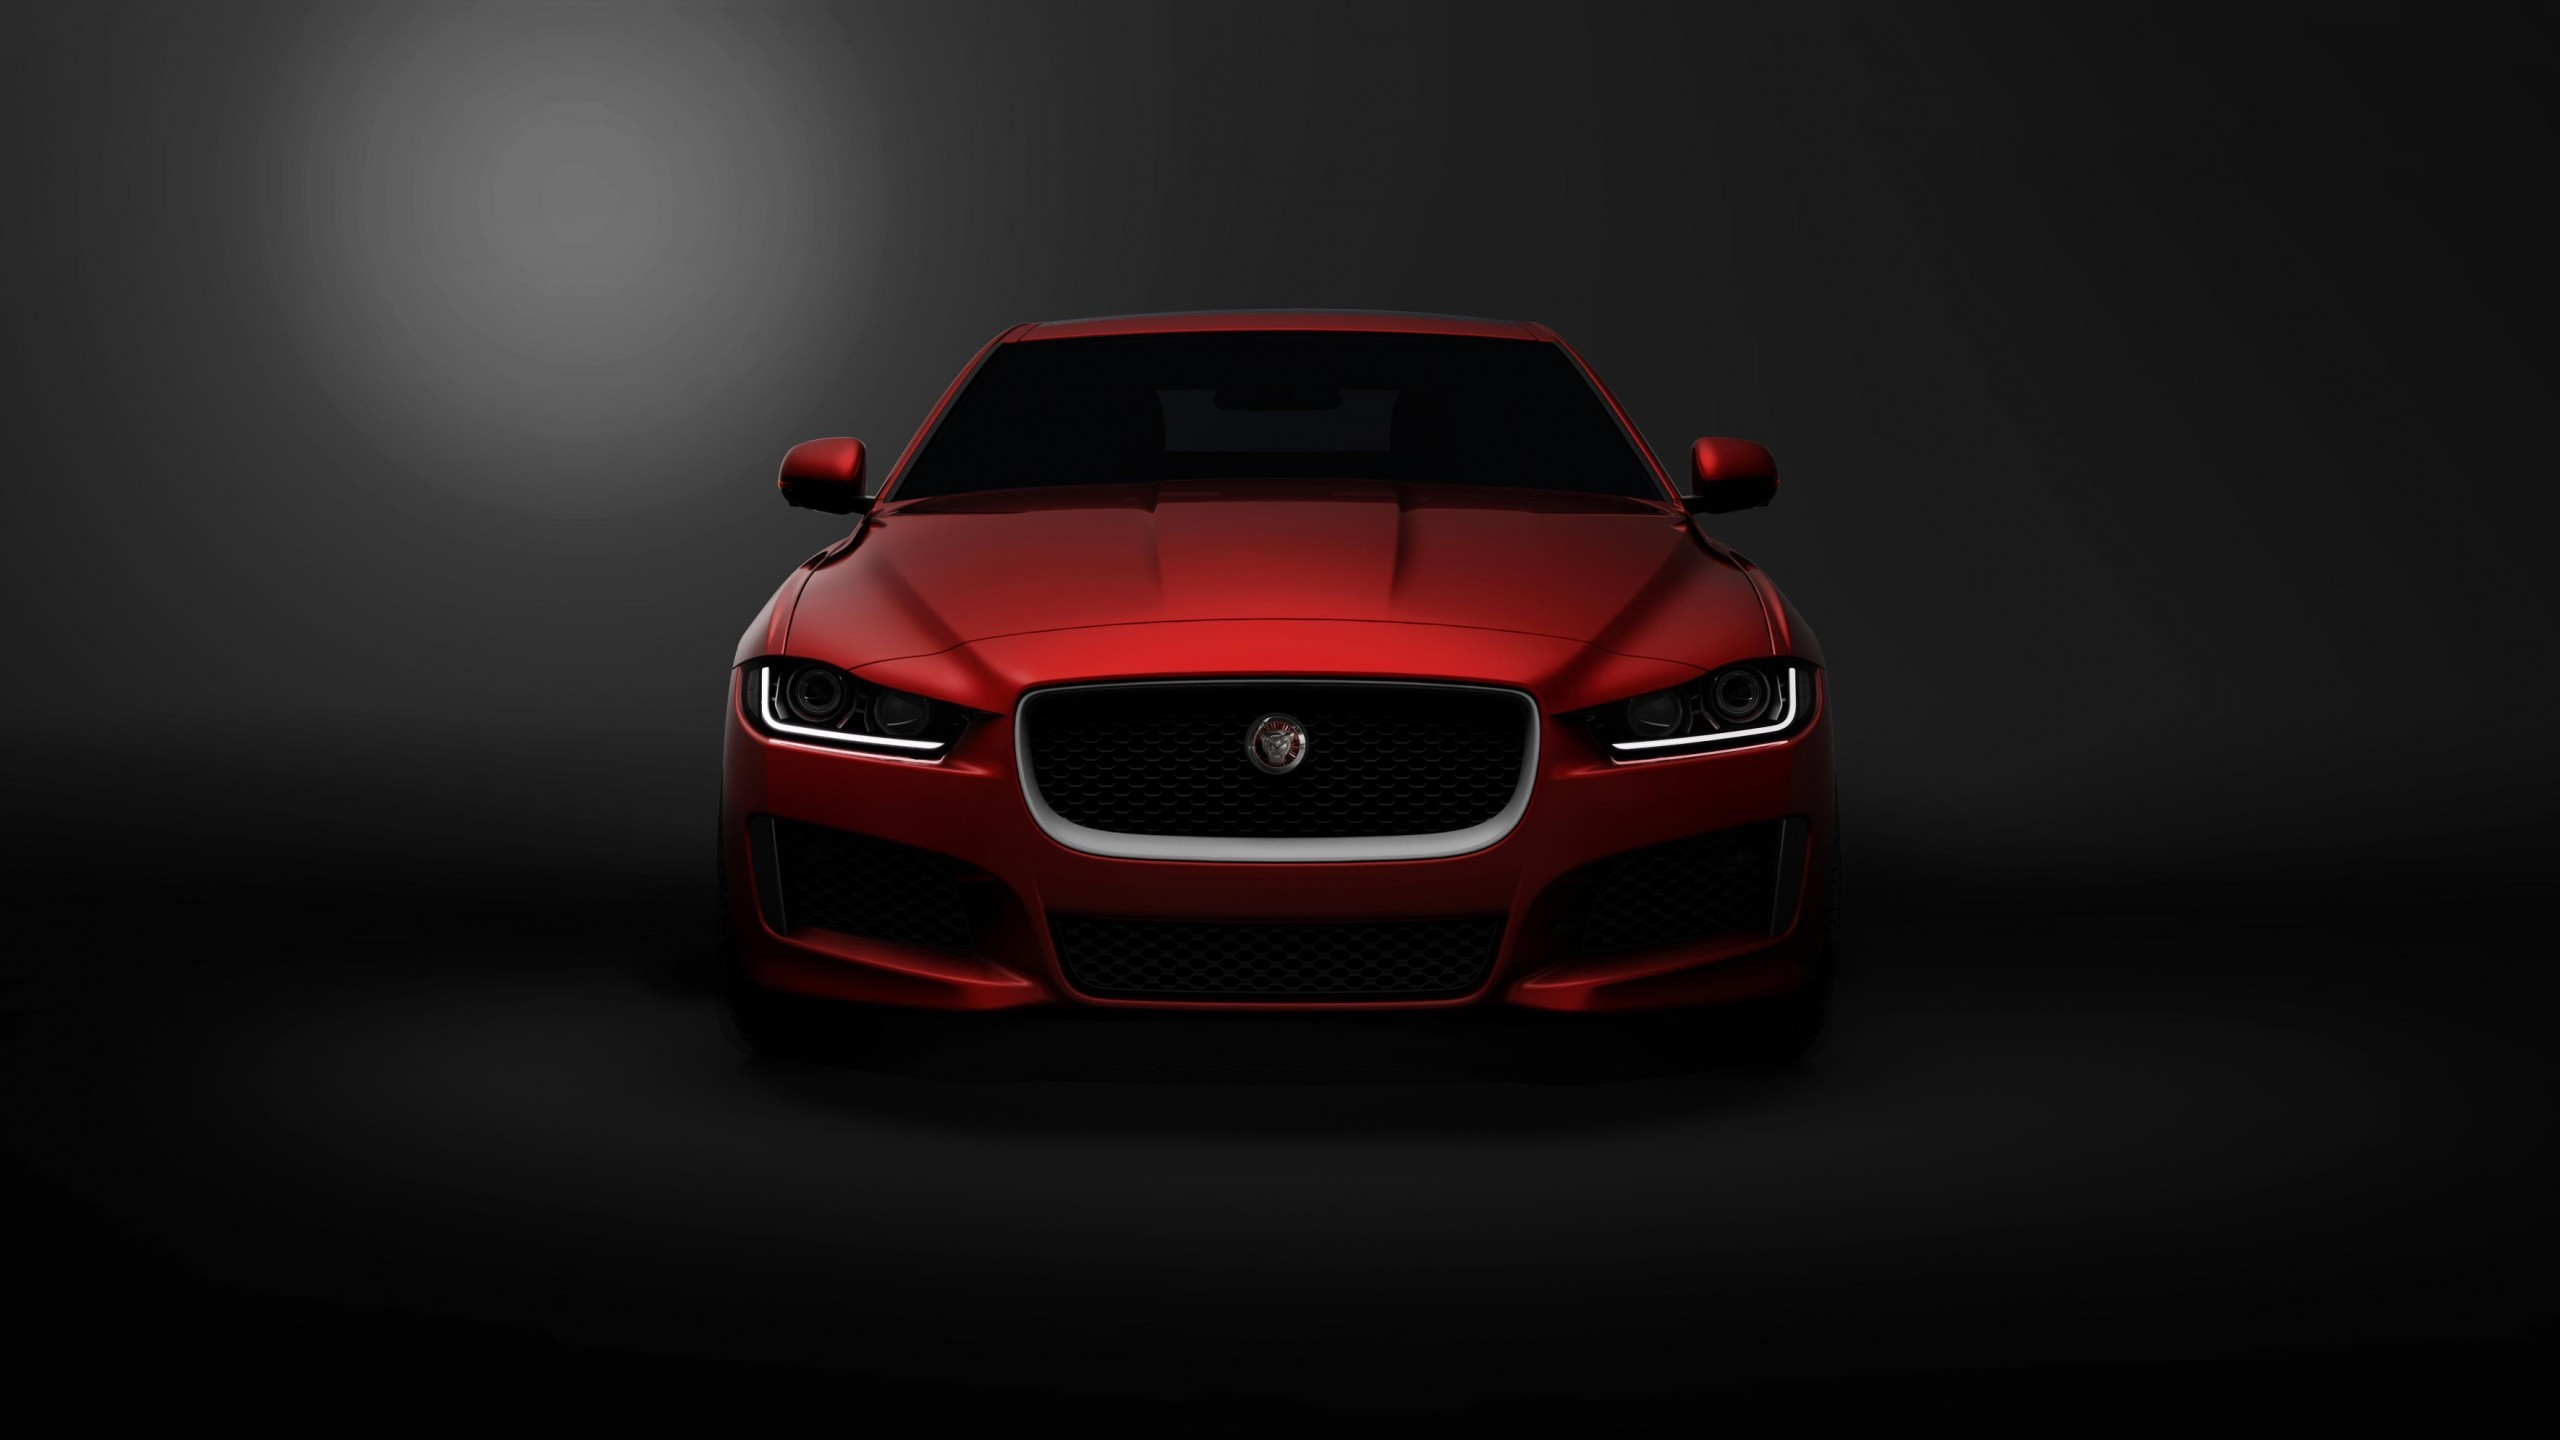 2560x1440 Jaguar Car Latest New Models HD Wallpaper Pictures Download